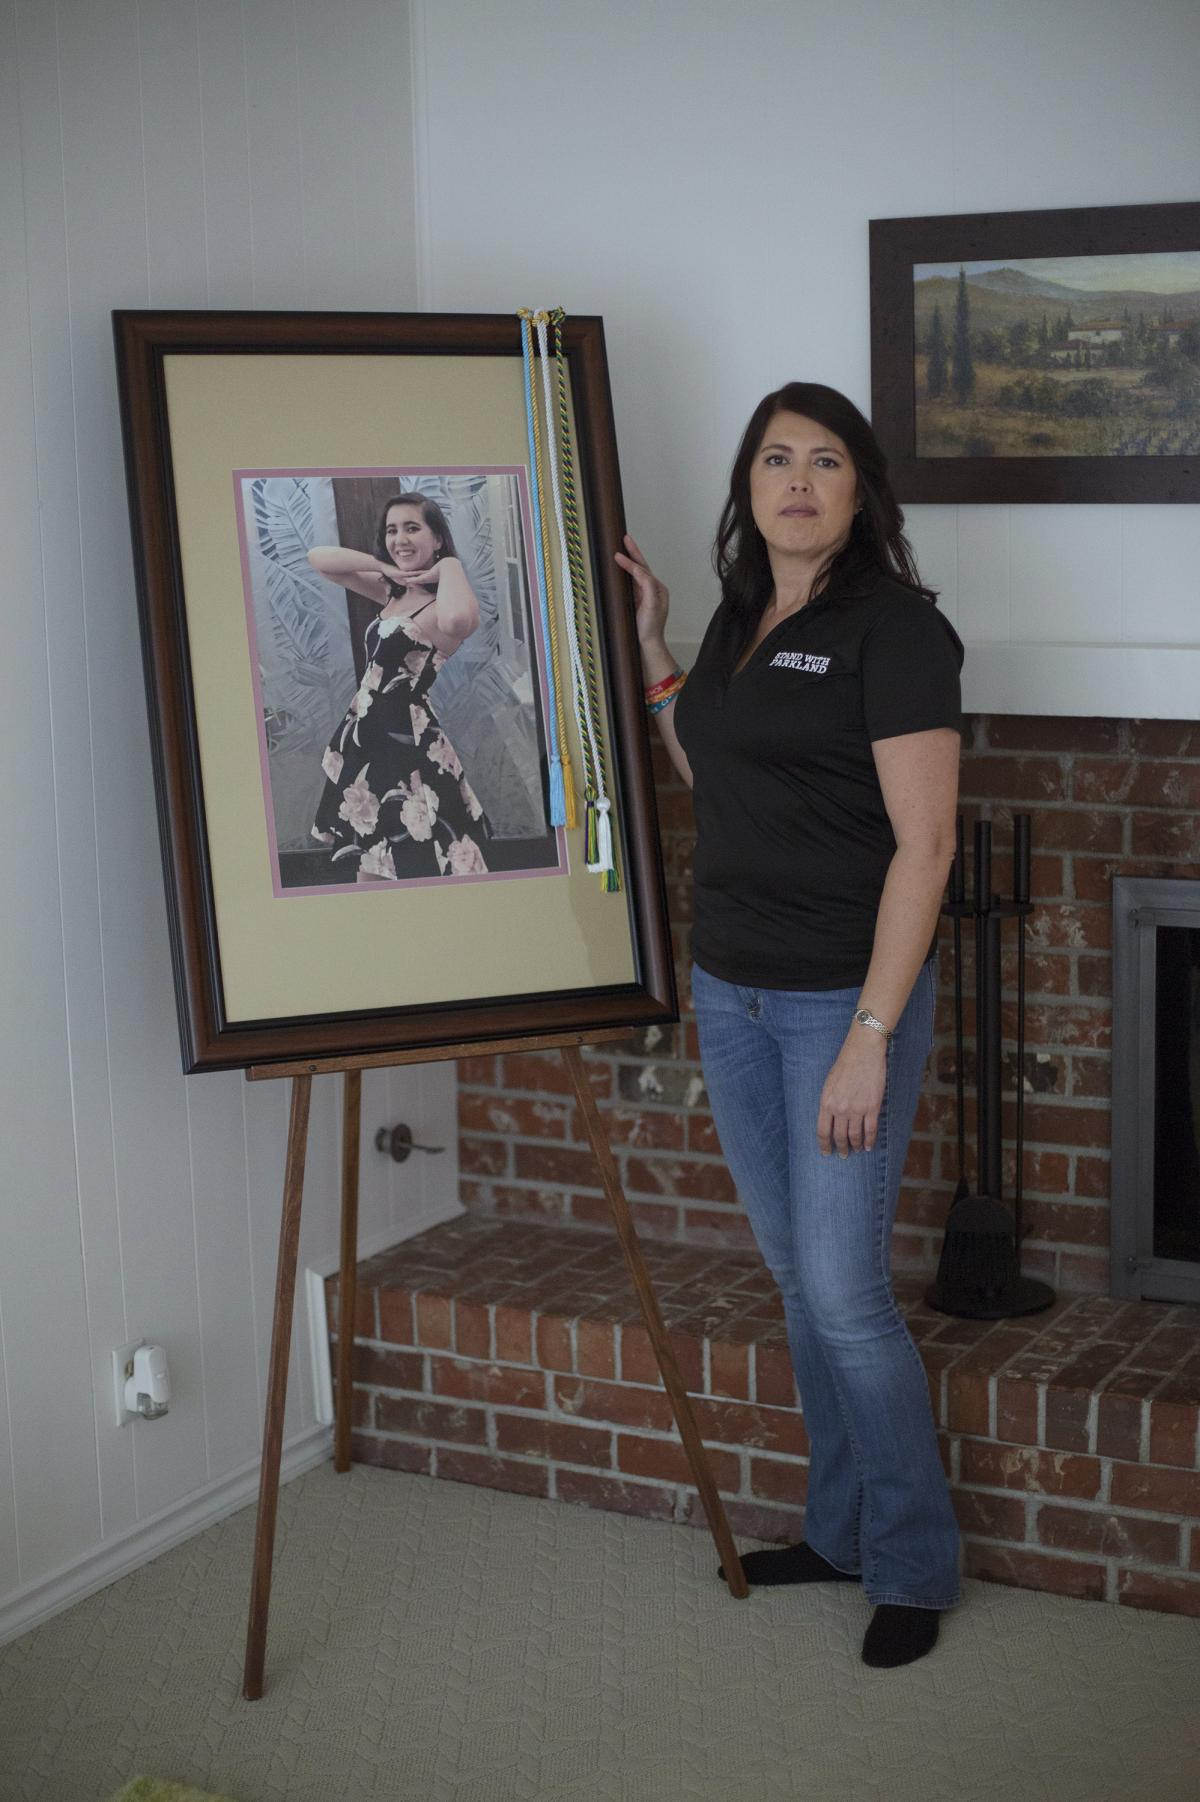 One year after Carmen's death, April Schentrup stands beside a photograph of her daughter that was used during her funeral but now rests in the family's new home. April, who worked as an elementary school principal in Parkland, Fla., now advocates for gun